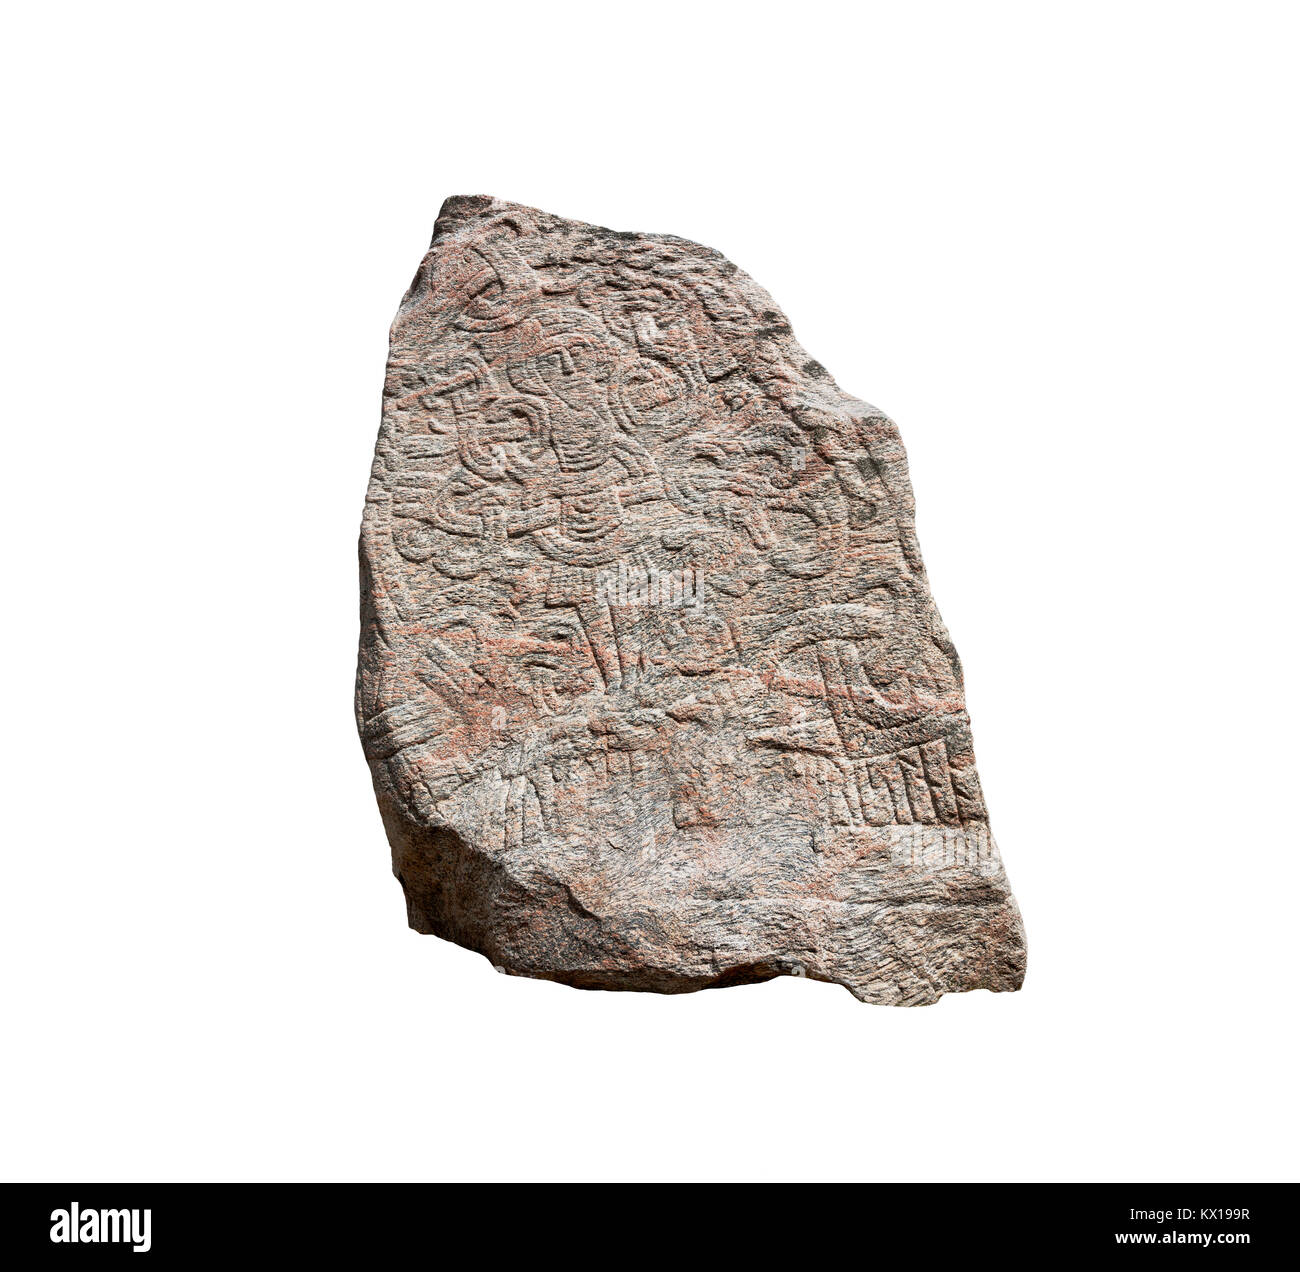 The figure of Christ on the large Jelling rune stone  raised by King Harald Bluetooth in the 960s. Other side of - Stock Image